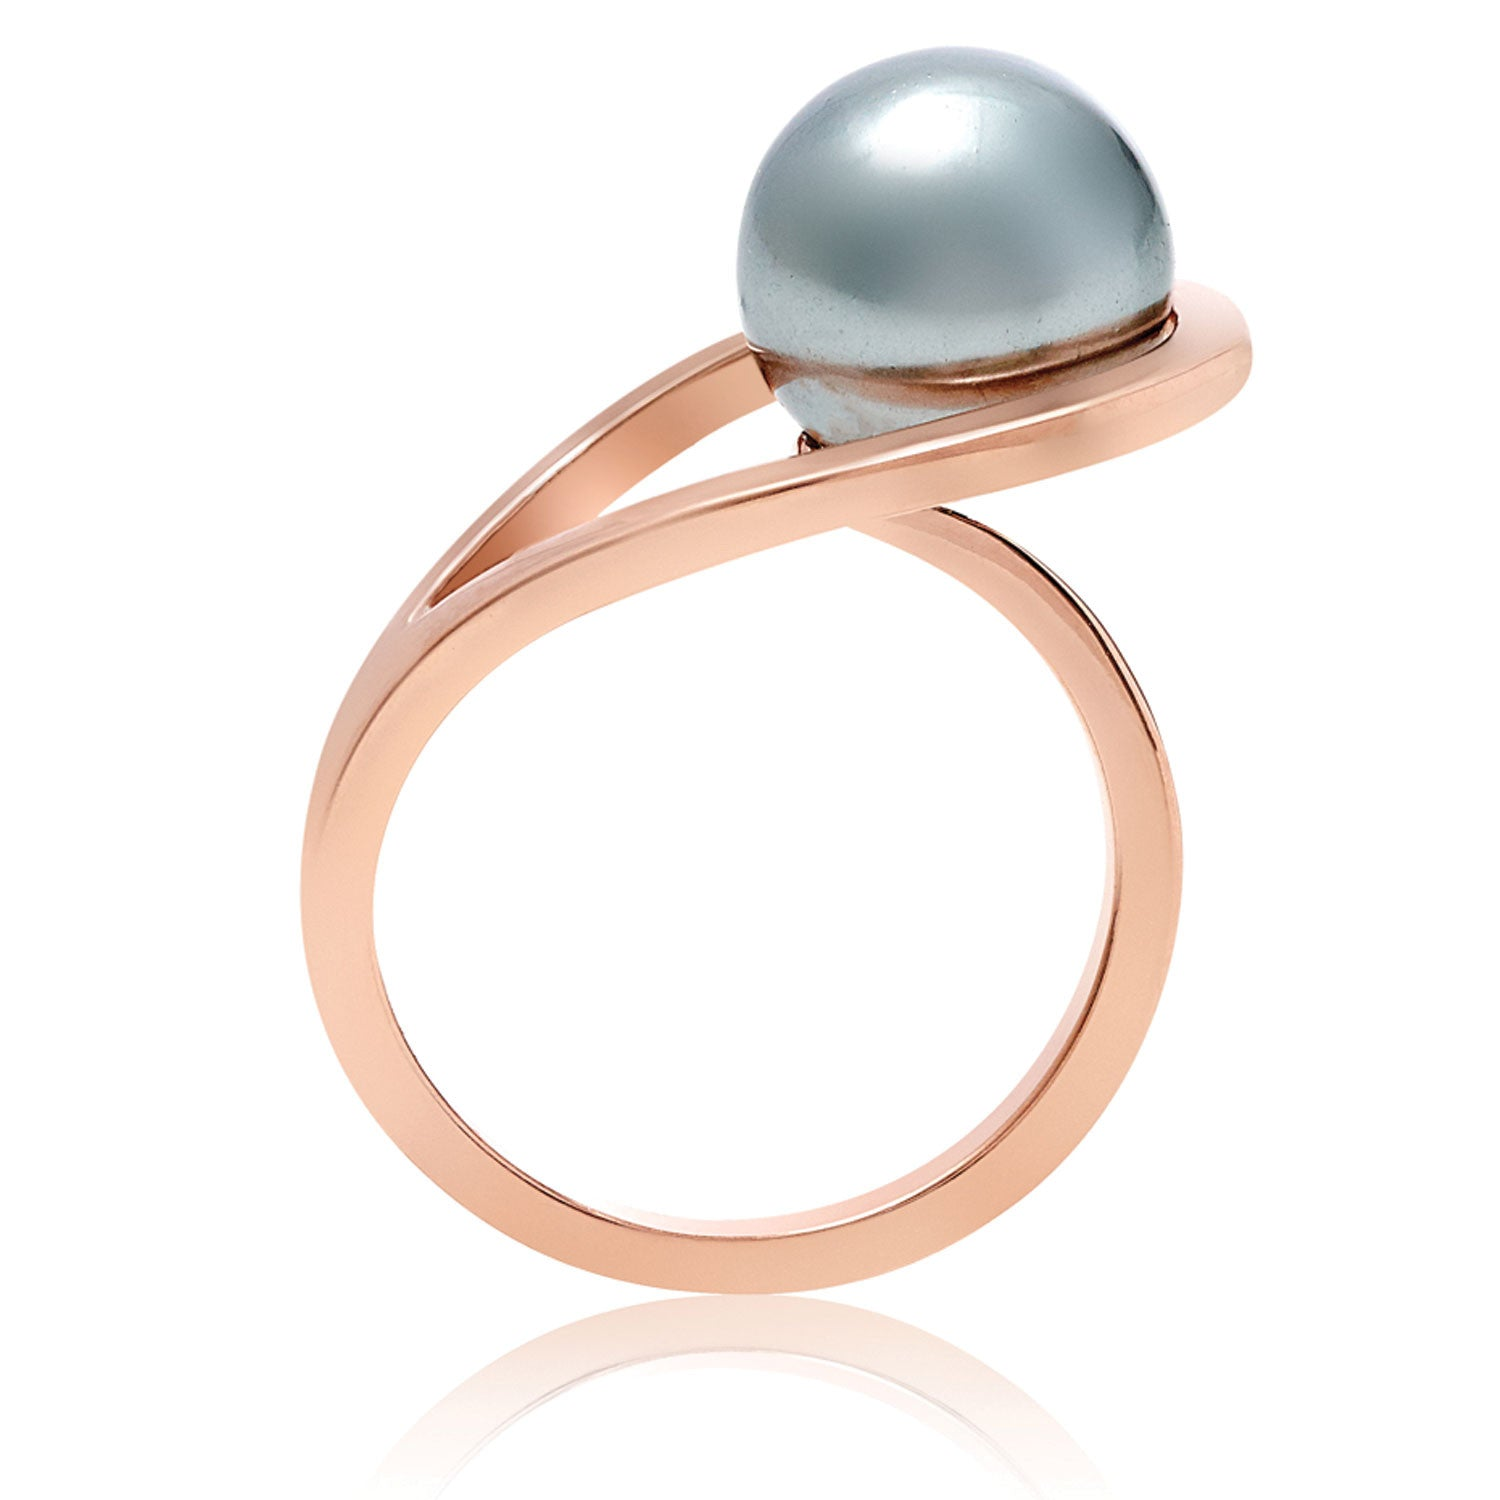 Rose Gold ring, grey pearl, geometric, unique British design